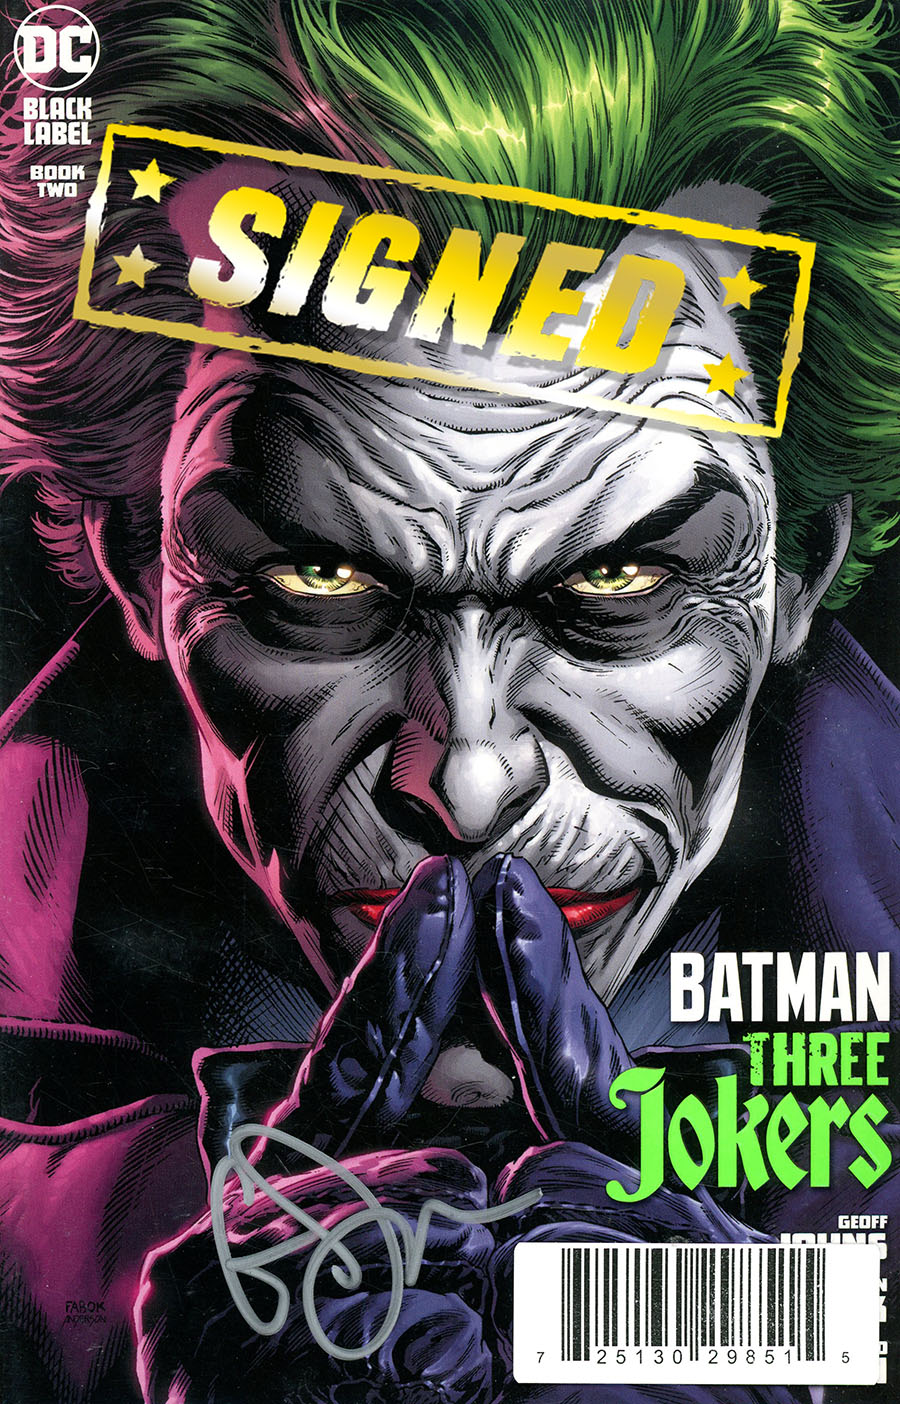 Batman Three Jokers #2 Cover E DF Signed By Geoff Johns